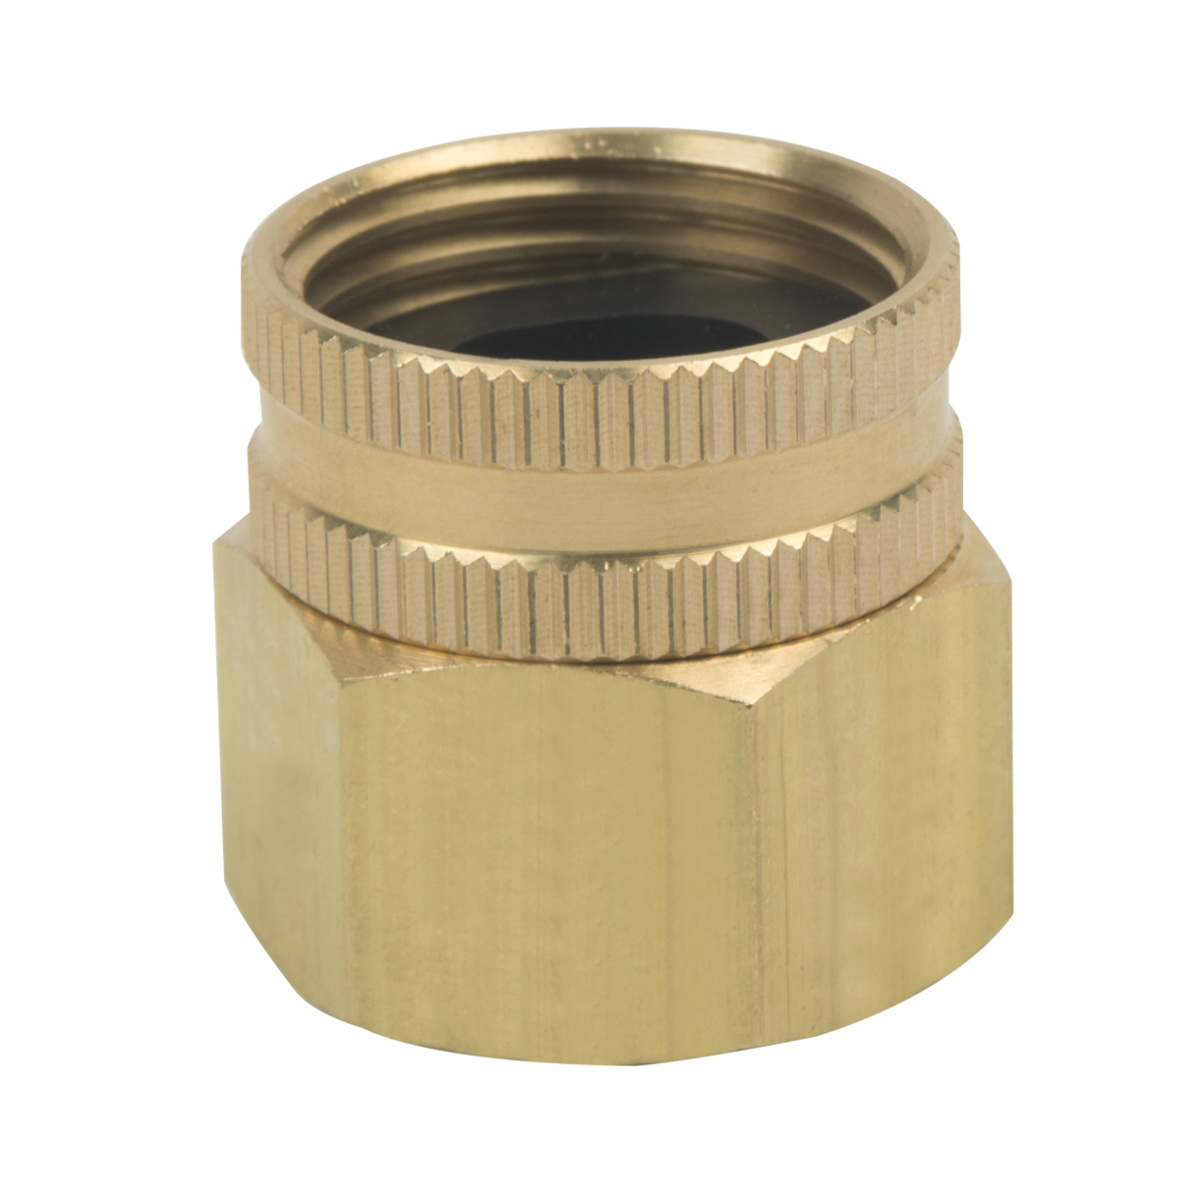 BrassCraft® HUS11-12-12 Rough Brass Hose Adapter, 3/4 in, FHT x FIP